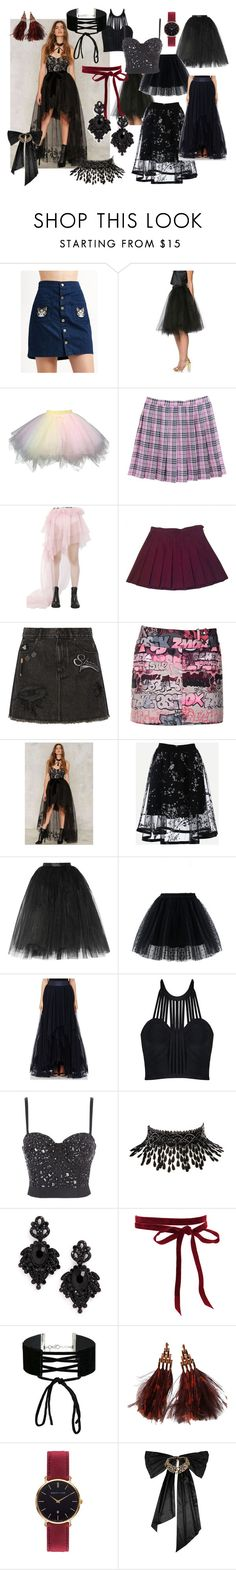 """""""can we add some drama?"""" by kelly-de-vries ❤ liked on Polyvore featuring Rolling Acid, American Apparel, Marc Jacobs, Giamba, Nasty Gal Collection, Ballet Beautiful, Chicwish, Alberta Ferretti, Jane Norman and Amrita Singh"""